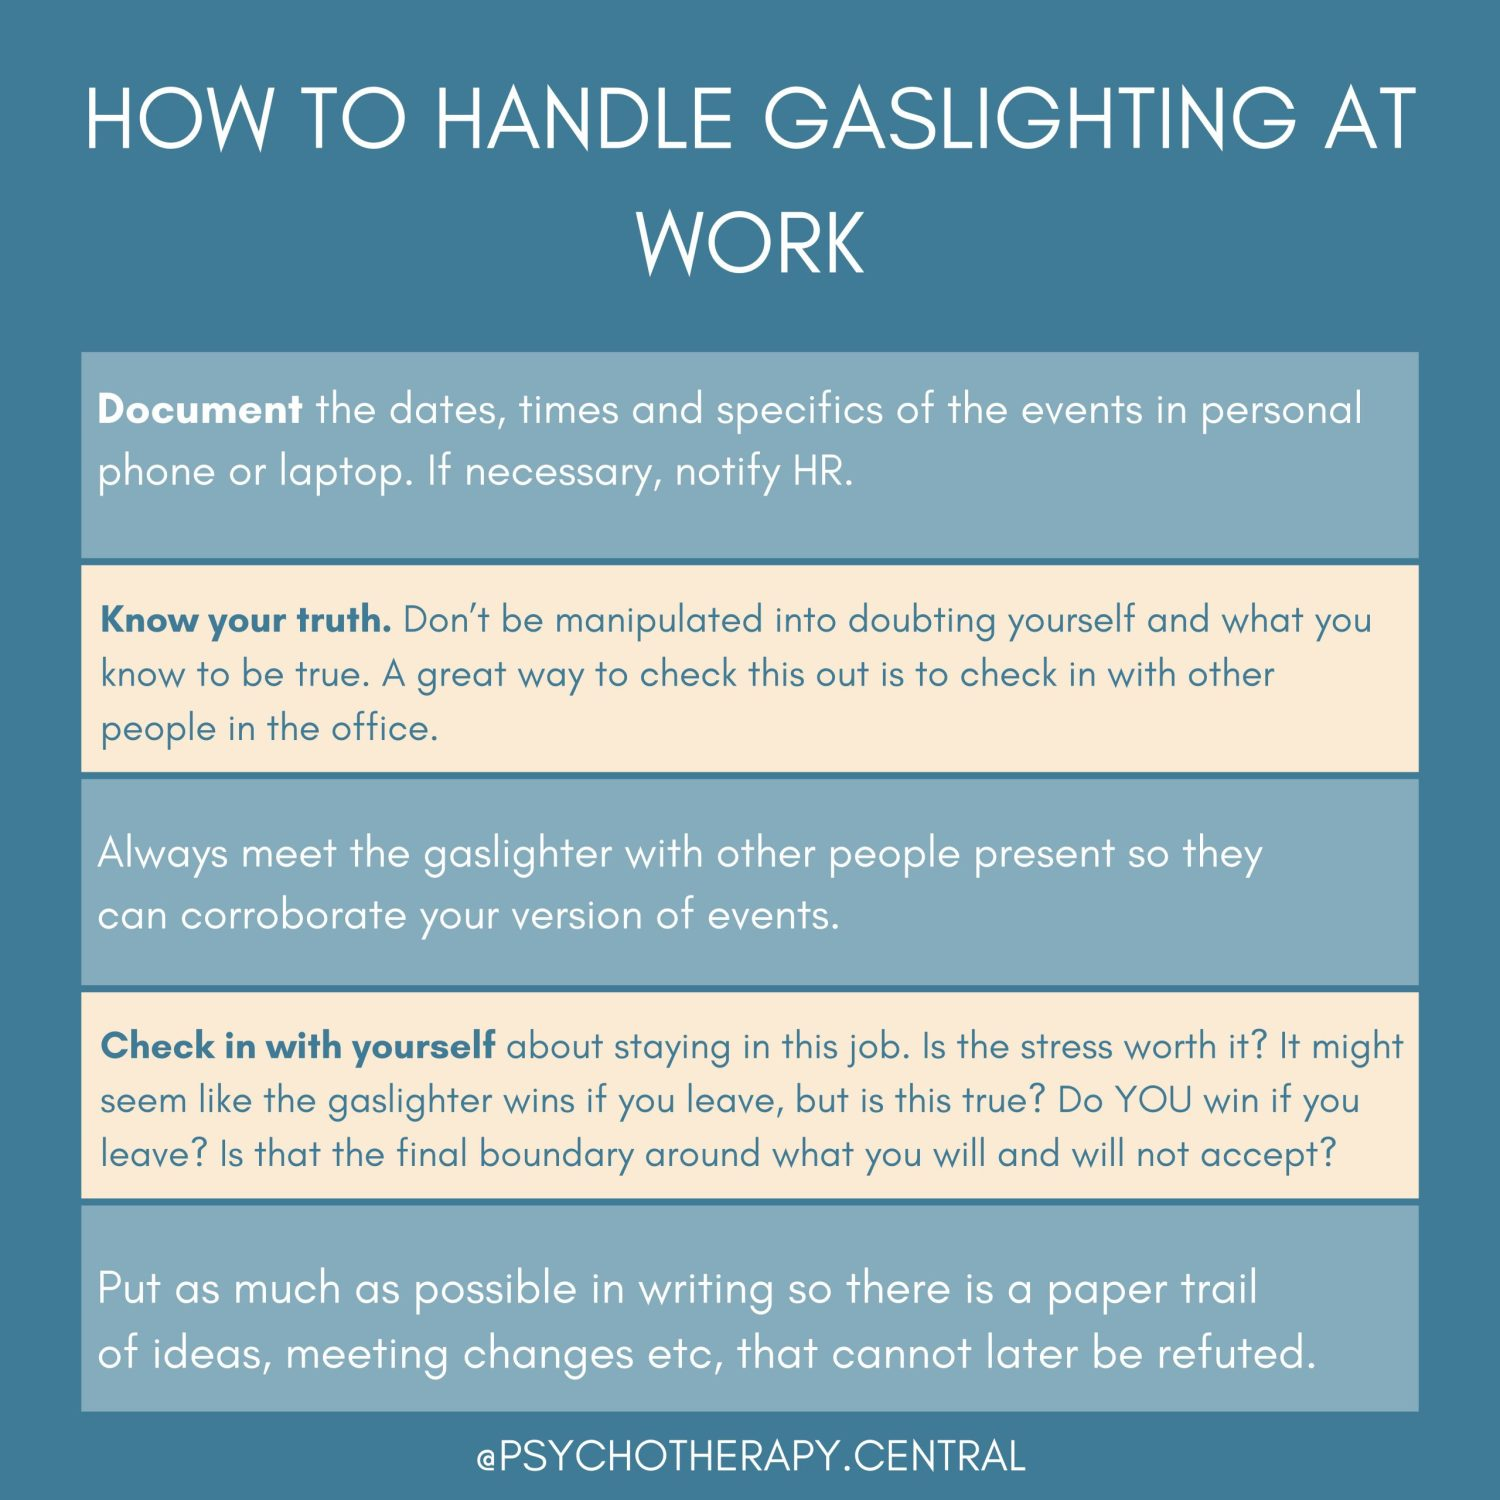 How To Handle Gaslighting At Work